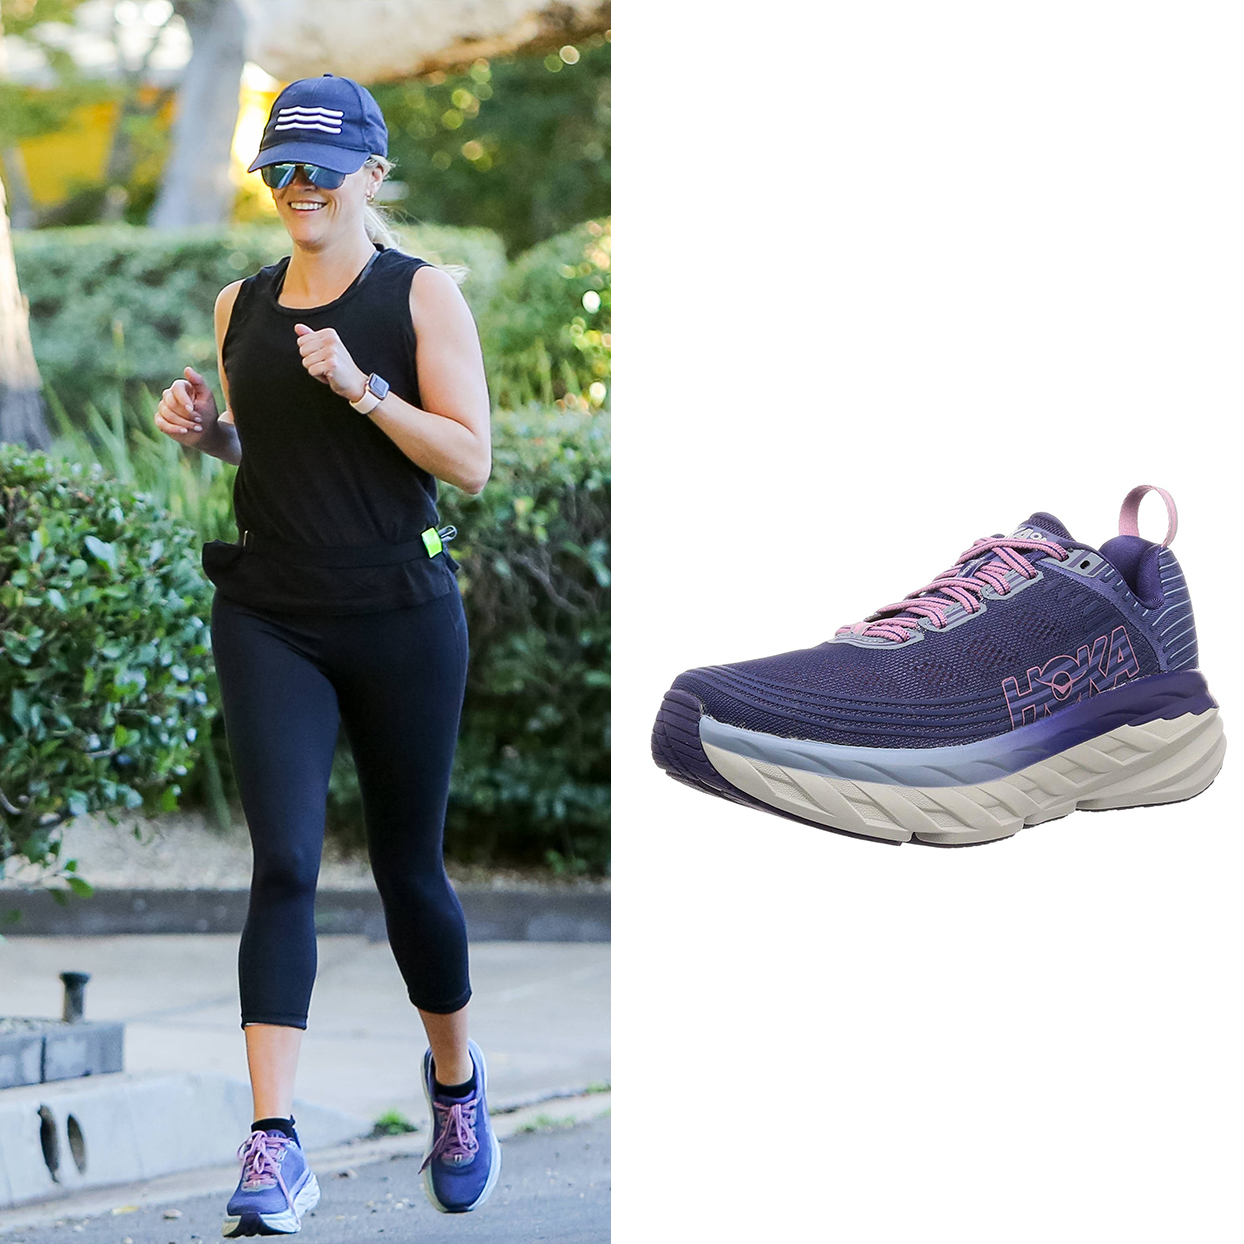 Reese Witherspoon wearing Hoka One One sneakers